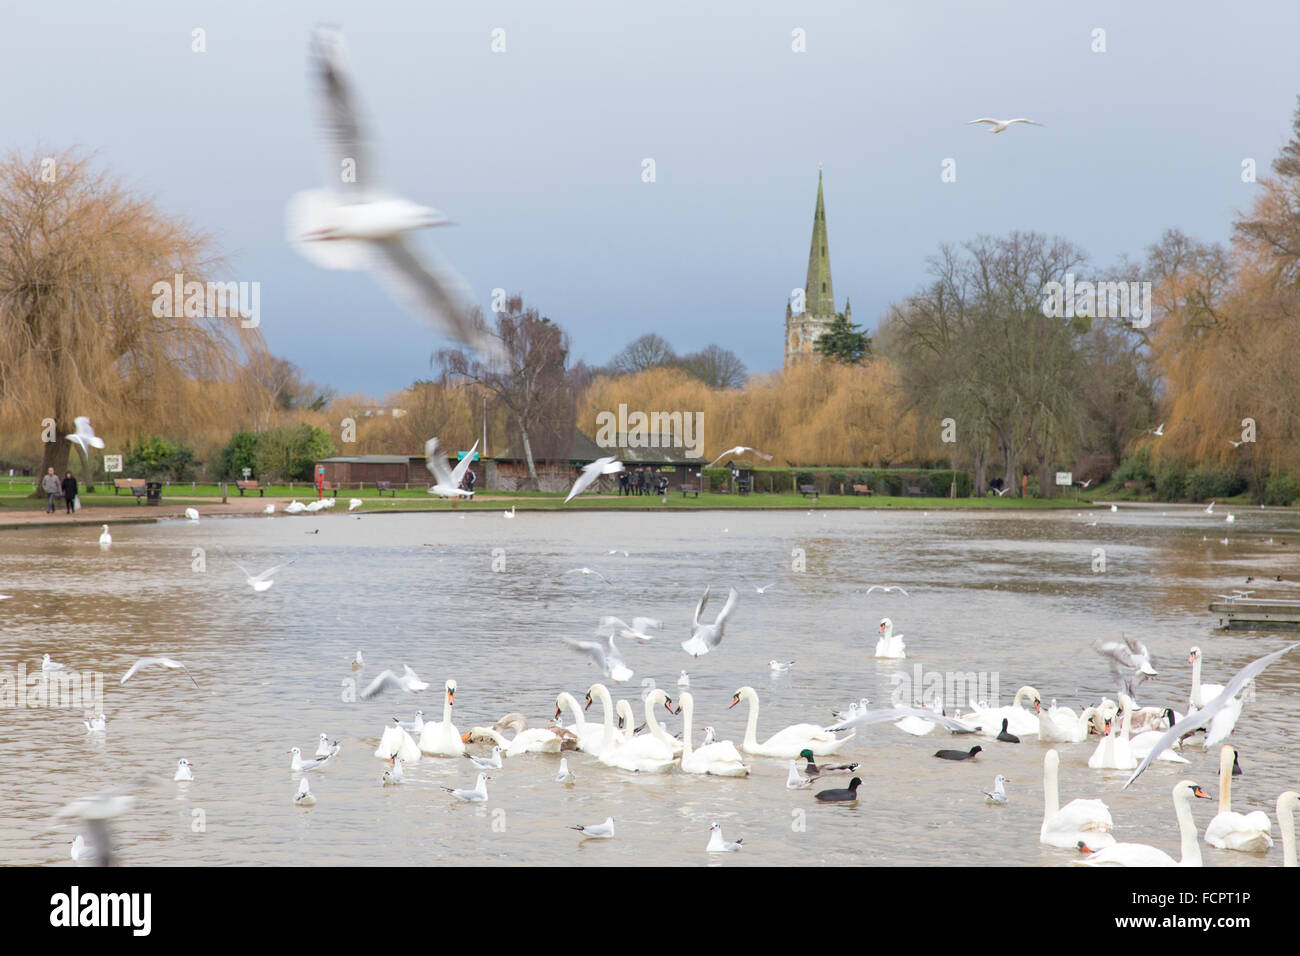 Seagulls and Swans on the River Avon at Stratford upon Avon, Warwickshire, England, UK - Stock Image